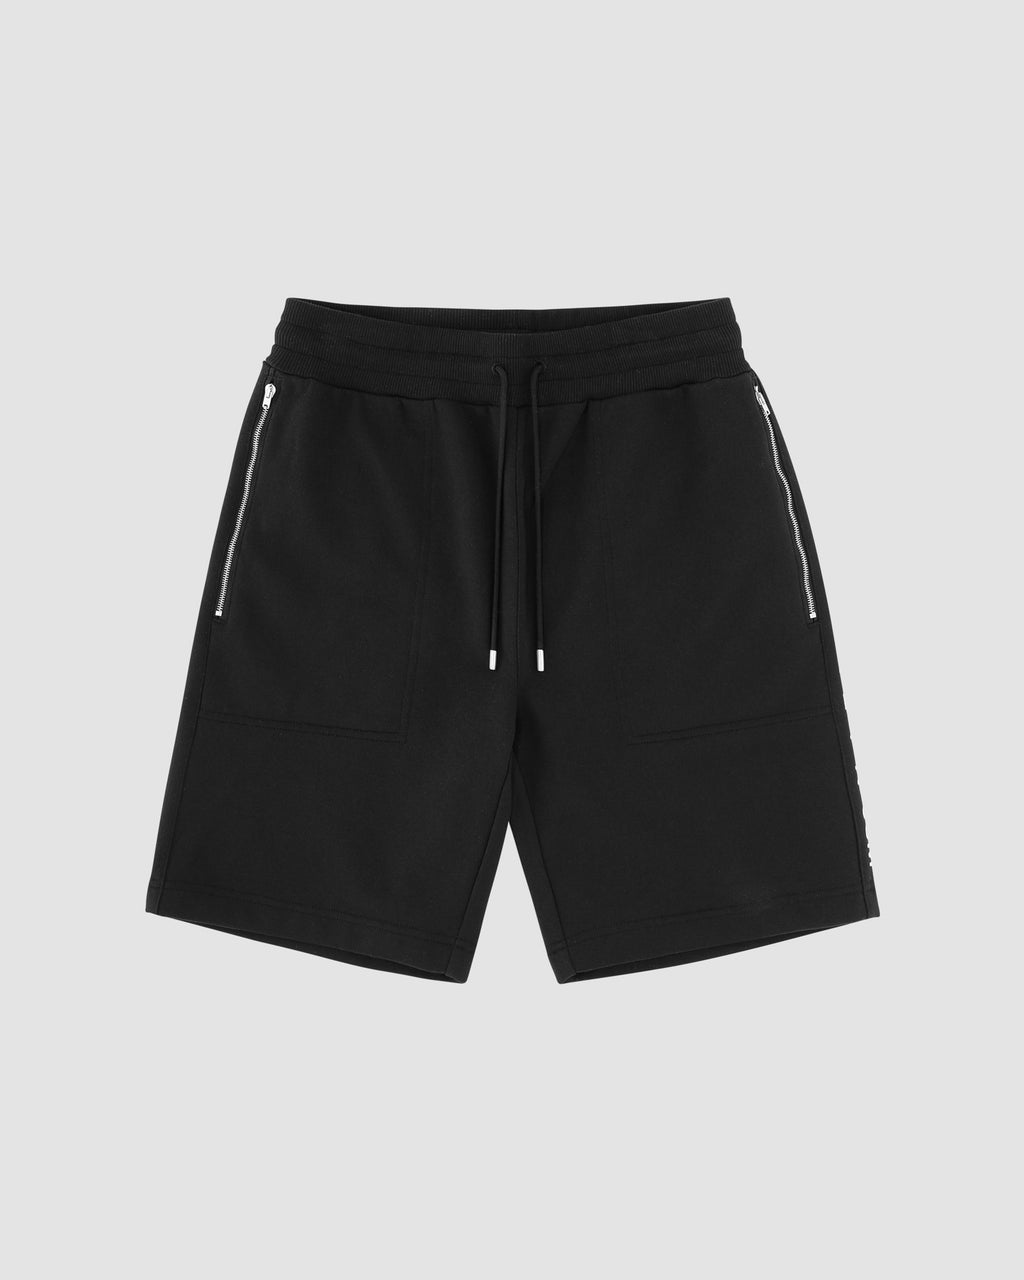 1017 ALYX 9SM | LOGO SWEAT SHORTS | Pants | Black, F19, Visual